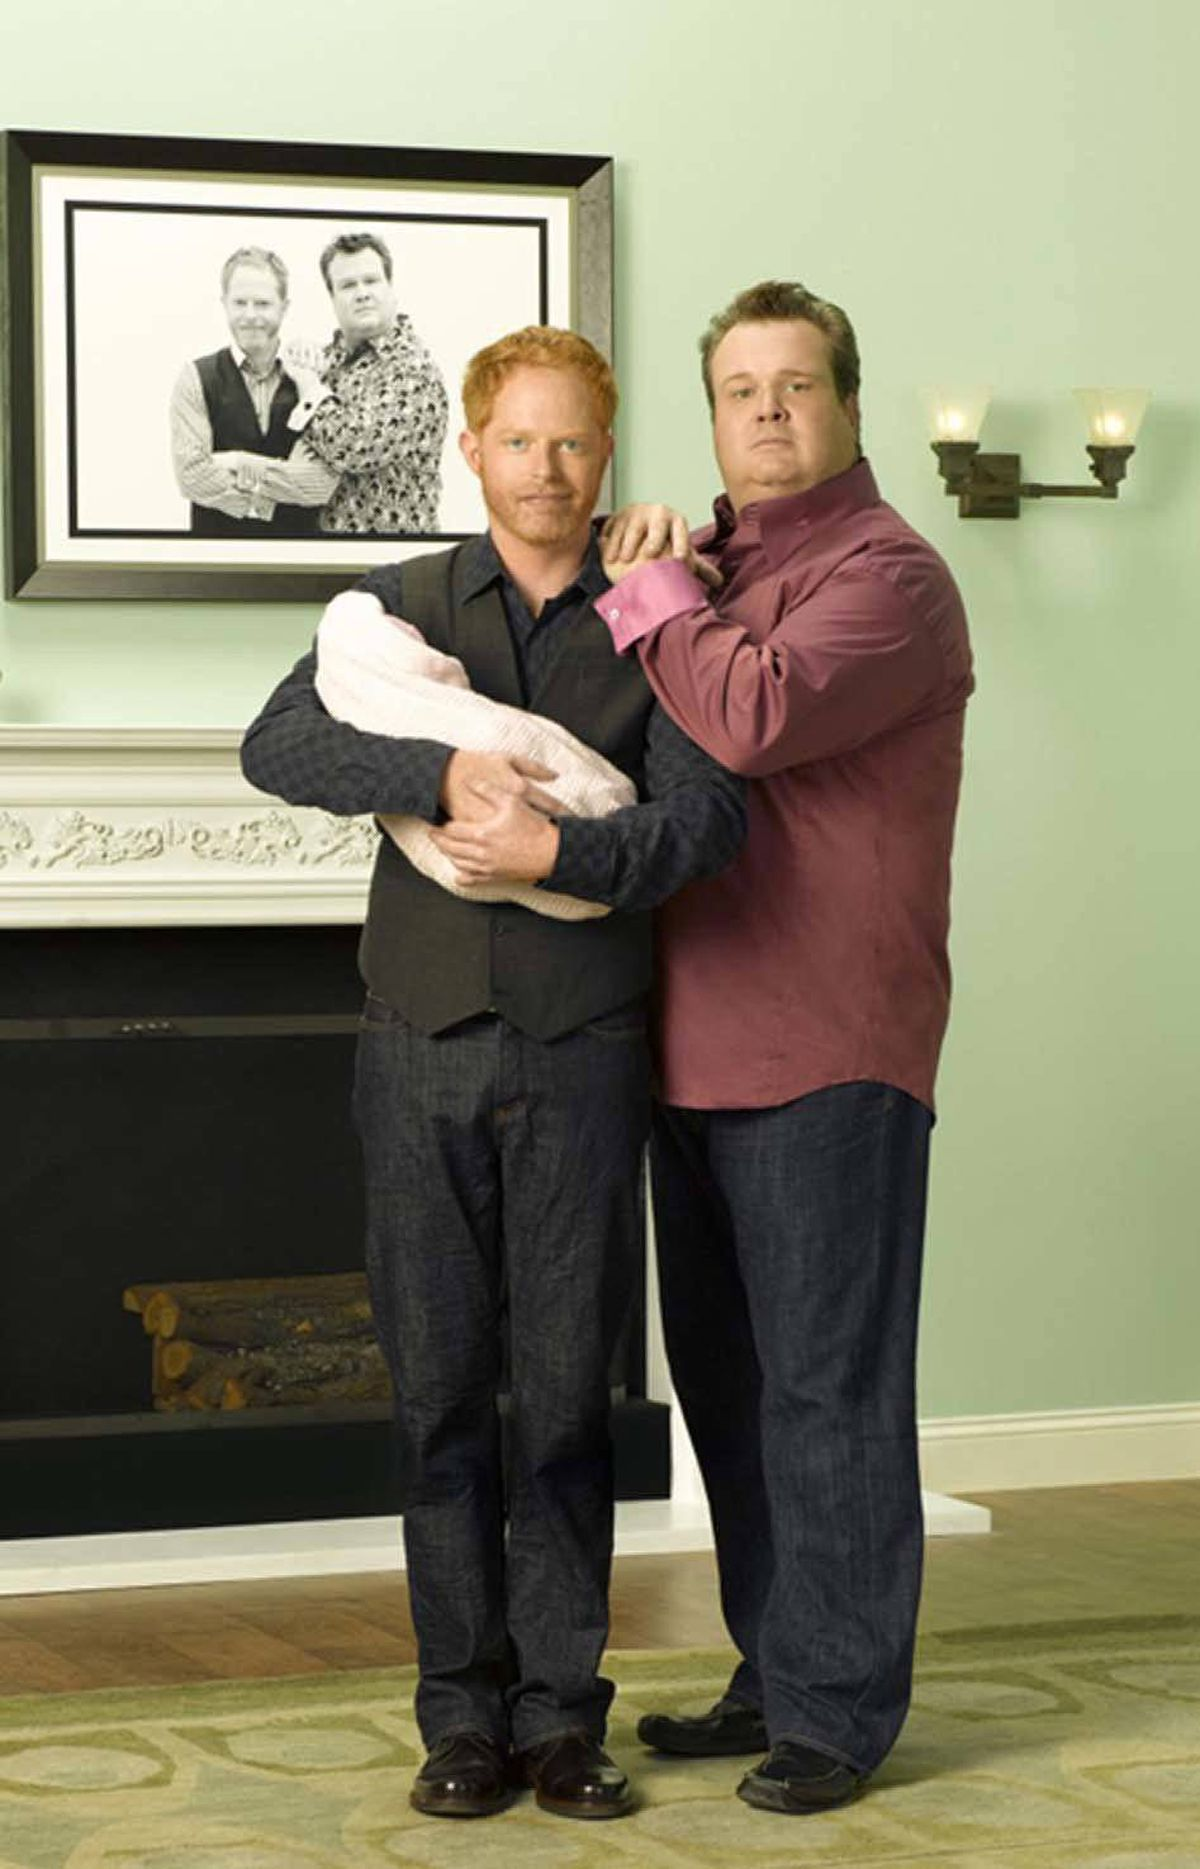 COMEDY Modern Family ABC, CITY-TV, 9 p.m. ET/PT The kids grow up so fast these days, don't they? Wrapping tonight, the third season of Modern Family has touched repeatedly on the efforts of the adorable gay couple Mitchell (Jesse Tyler Ferguson) and Cam (Eric Stonestreet) to adopt another child. They move closer to their dream tonight, but only if they can enlist Gloria (Sofia Vergara) to act as their translator with a Spanish-speaking adoption agent. That leaves Jay (Ed O'Neill) and Manny (Rico Rodriguez) to take Mitch and Cam's daughter Lily to her dance recital. Elsewhere, doting parents Phil (Ty Burrell) and Claire (Julie Bowen) get misty-eyed when youngest daughter Alex (Ariel Winter) goes off to her first prom, then shocked when their other daughter Haley (Sarah Hyland) announces her post-graduation plans. See you next fall.